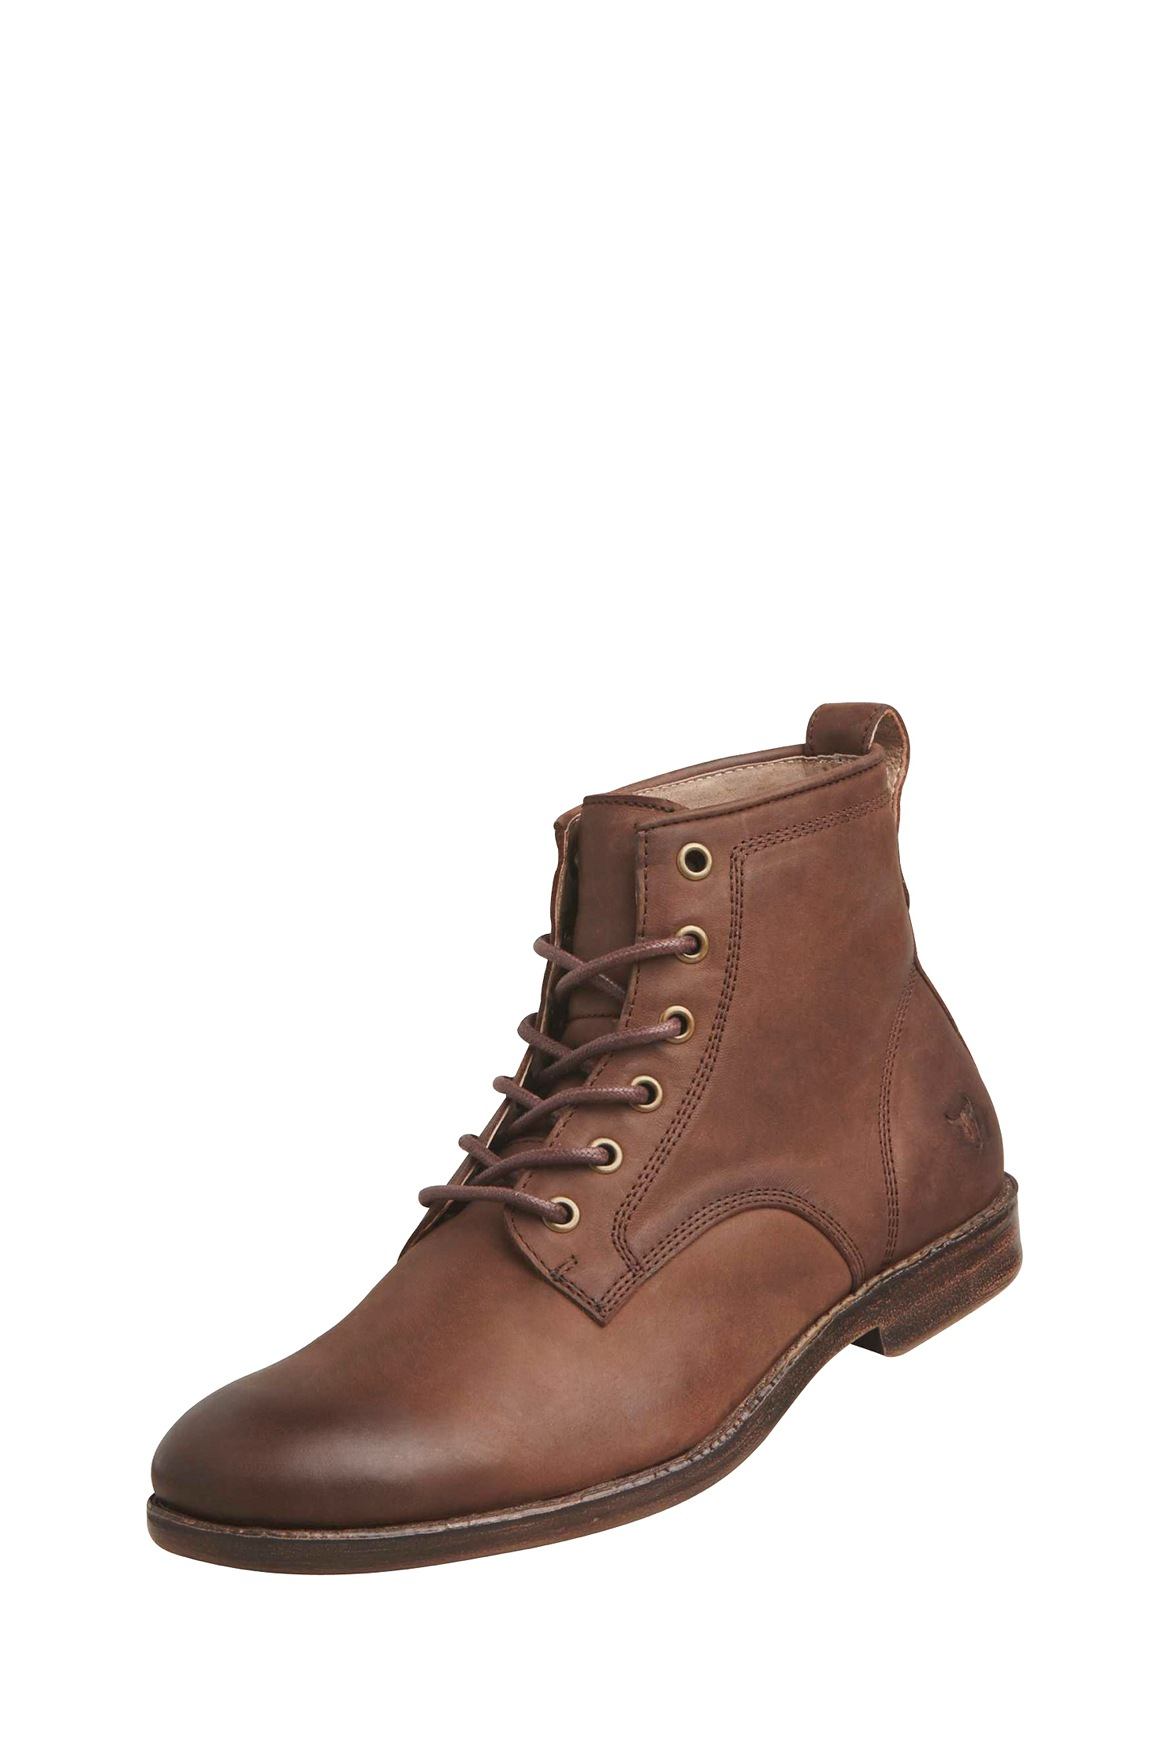 smith krab lace up boot myer